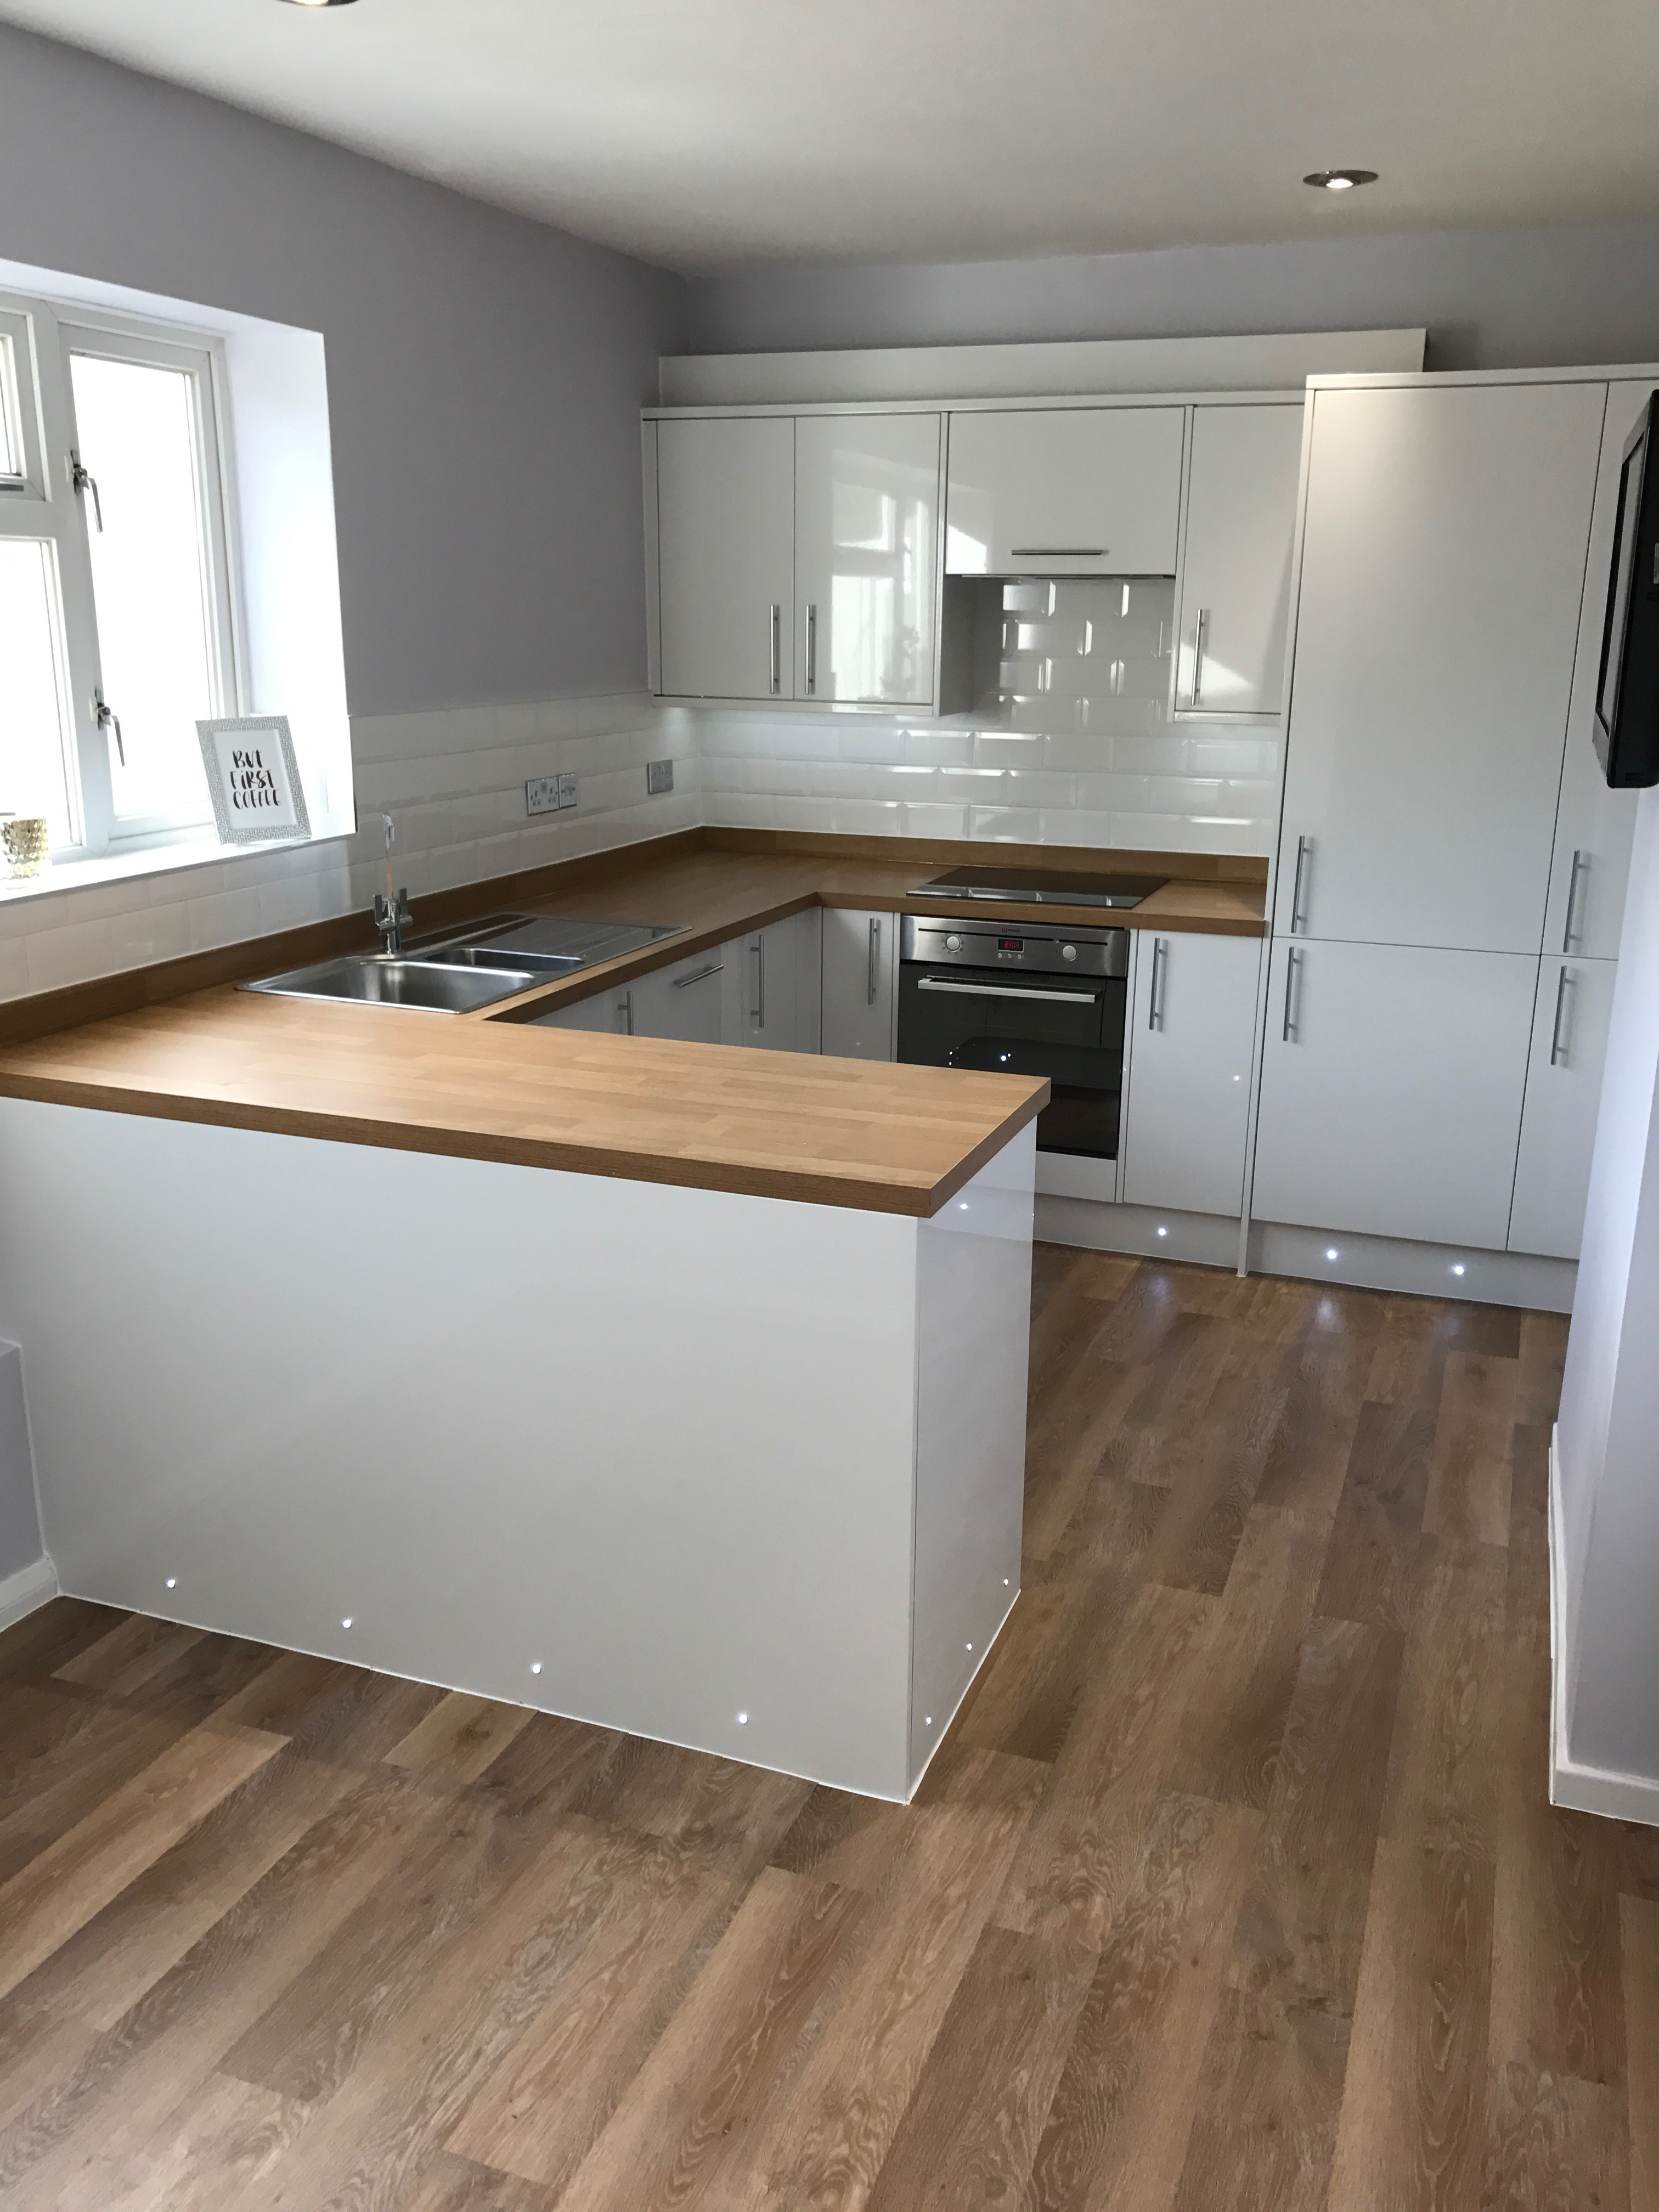 Kitchen Project Bedfordshire - TNM Property Services0675